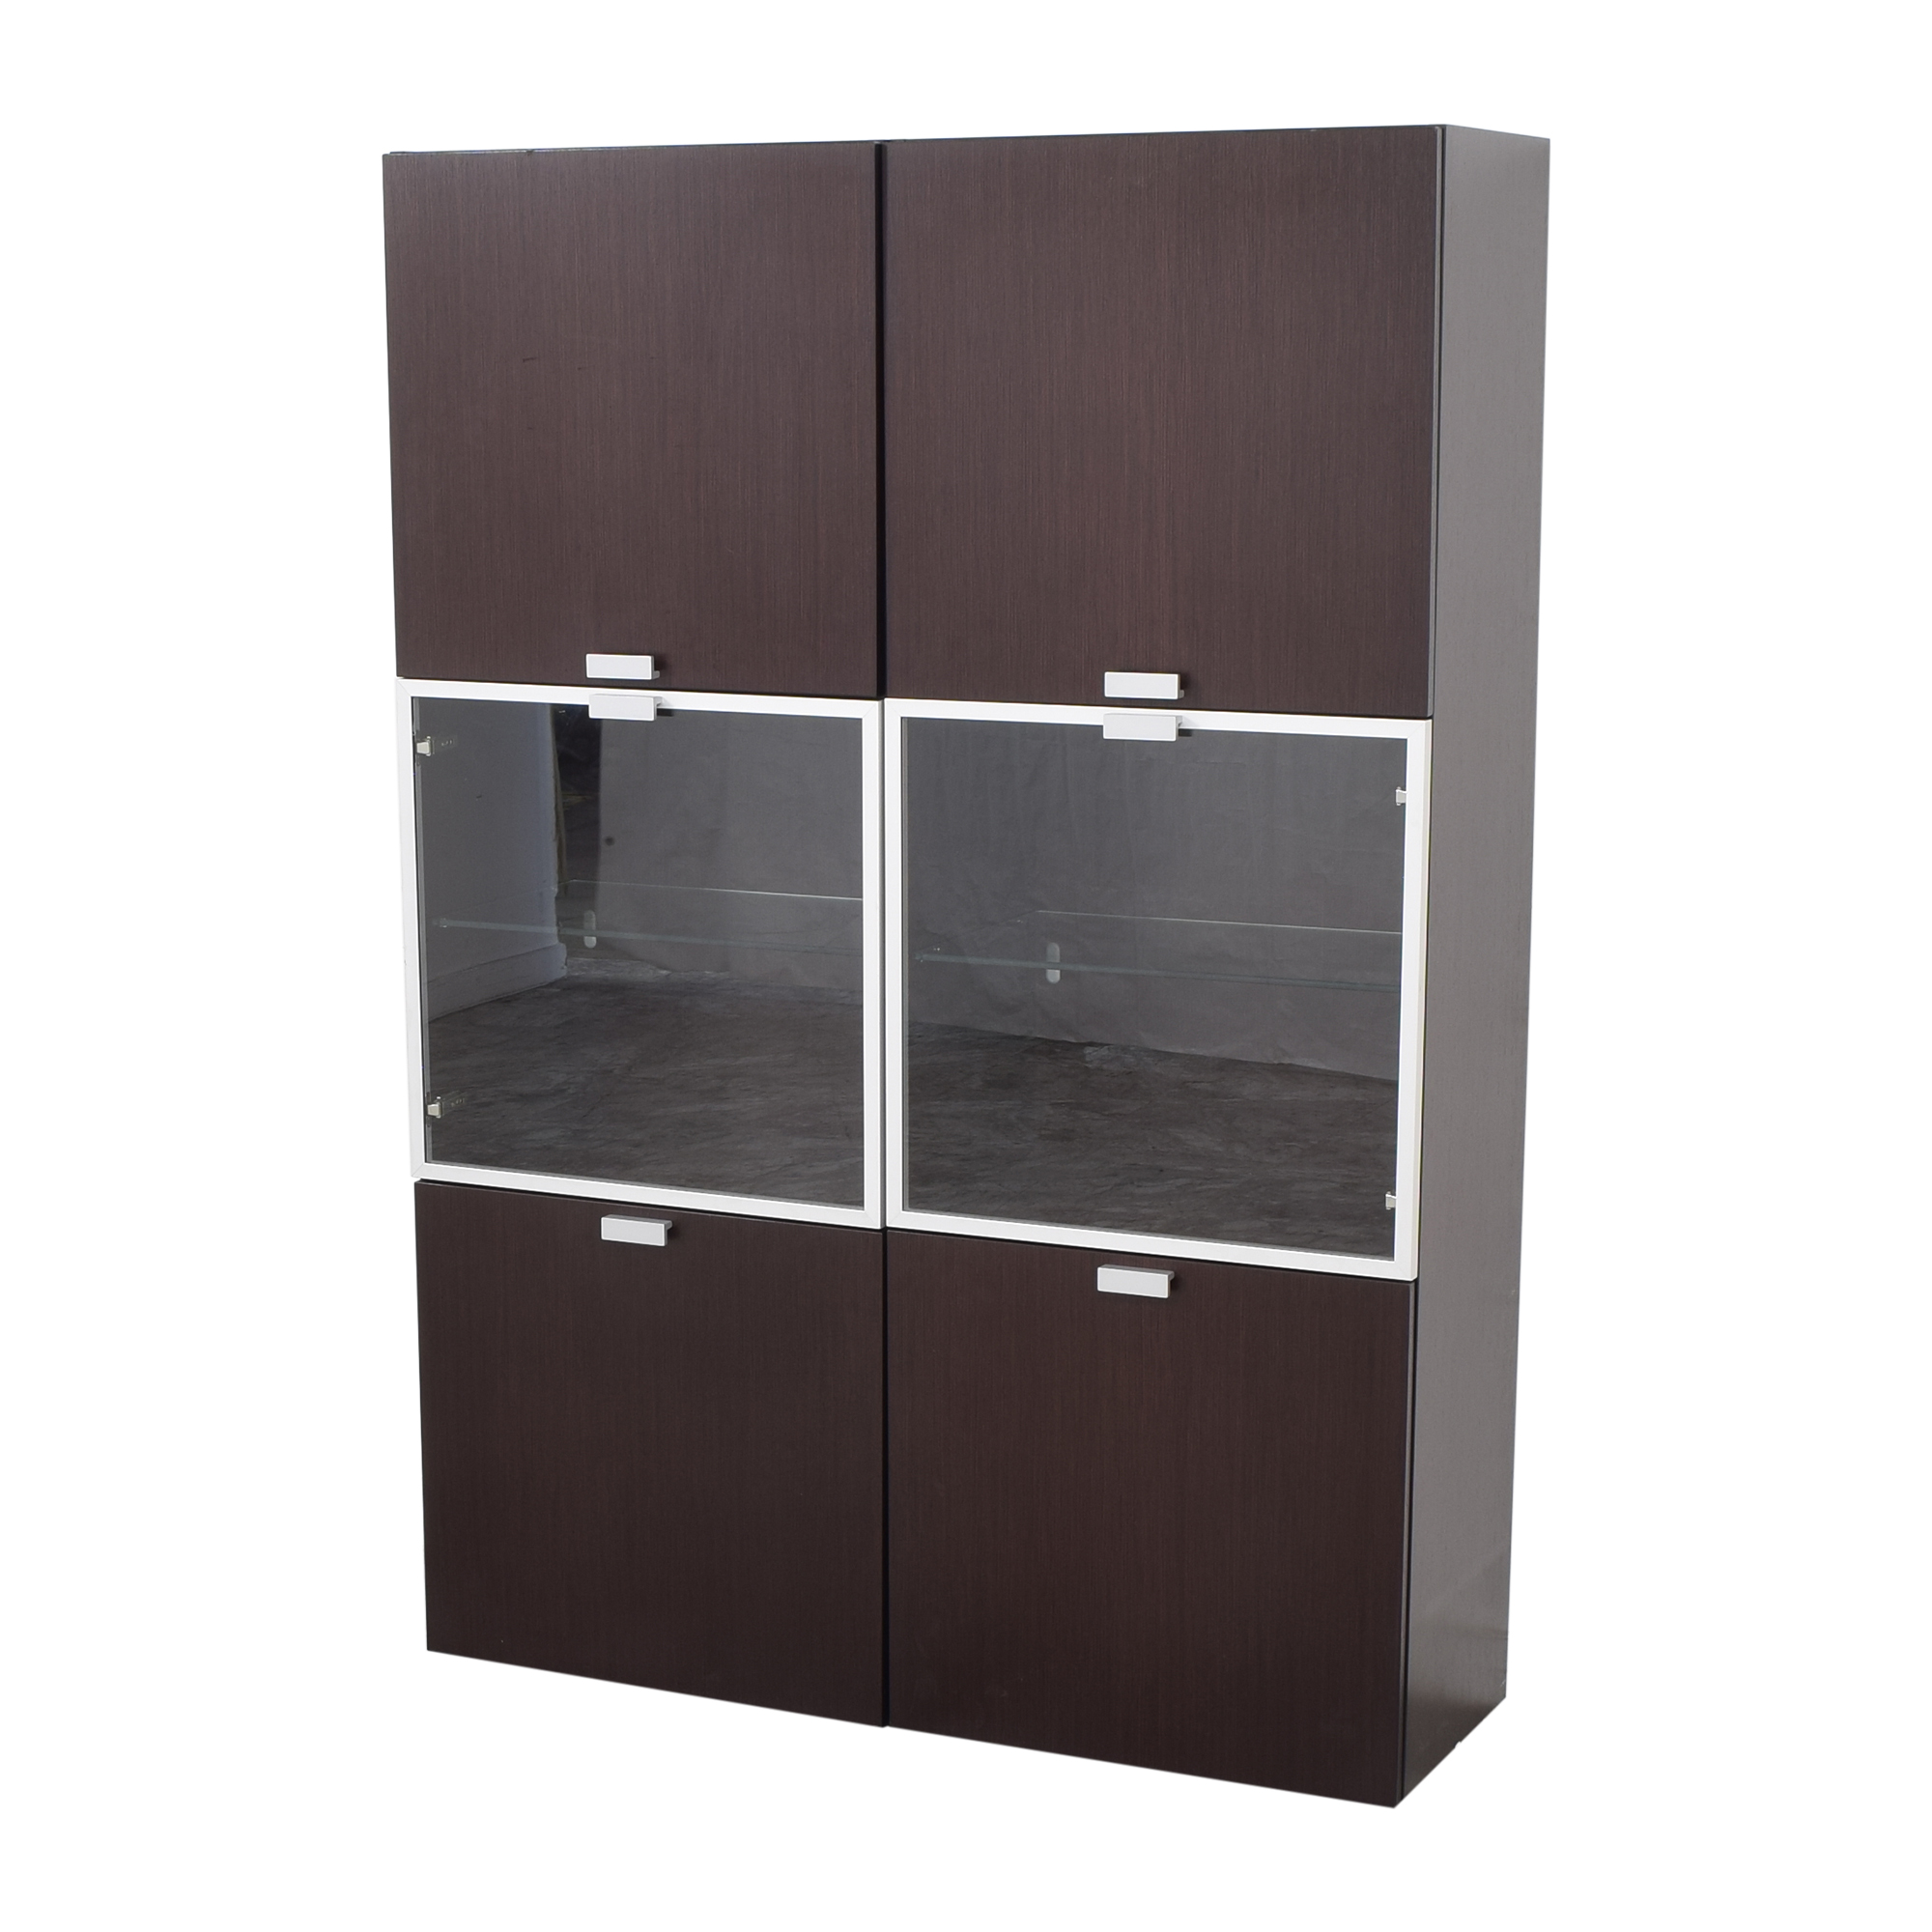 Jensen-Lewis Jensen-Lewis Upright Double Cabinet price